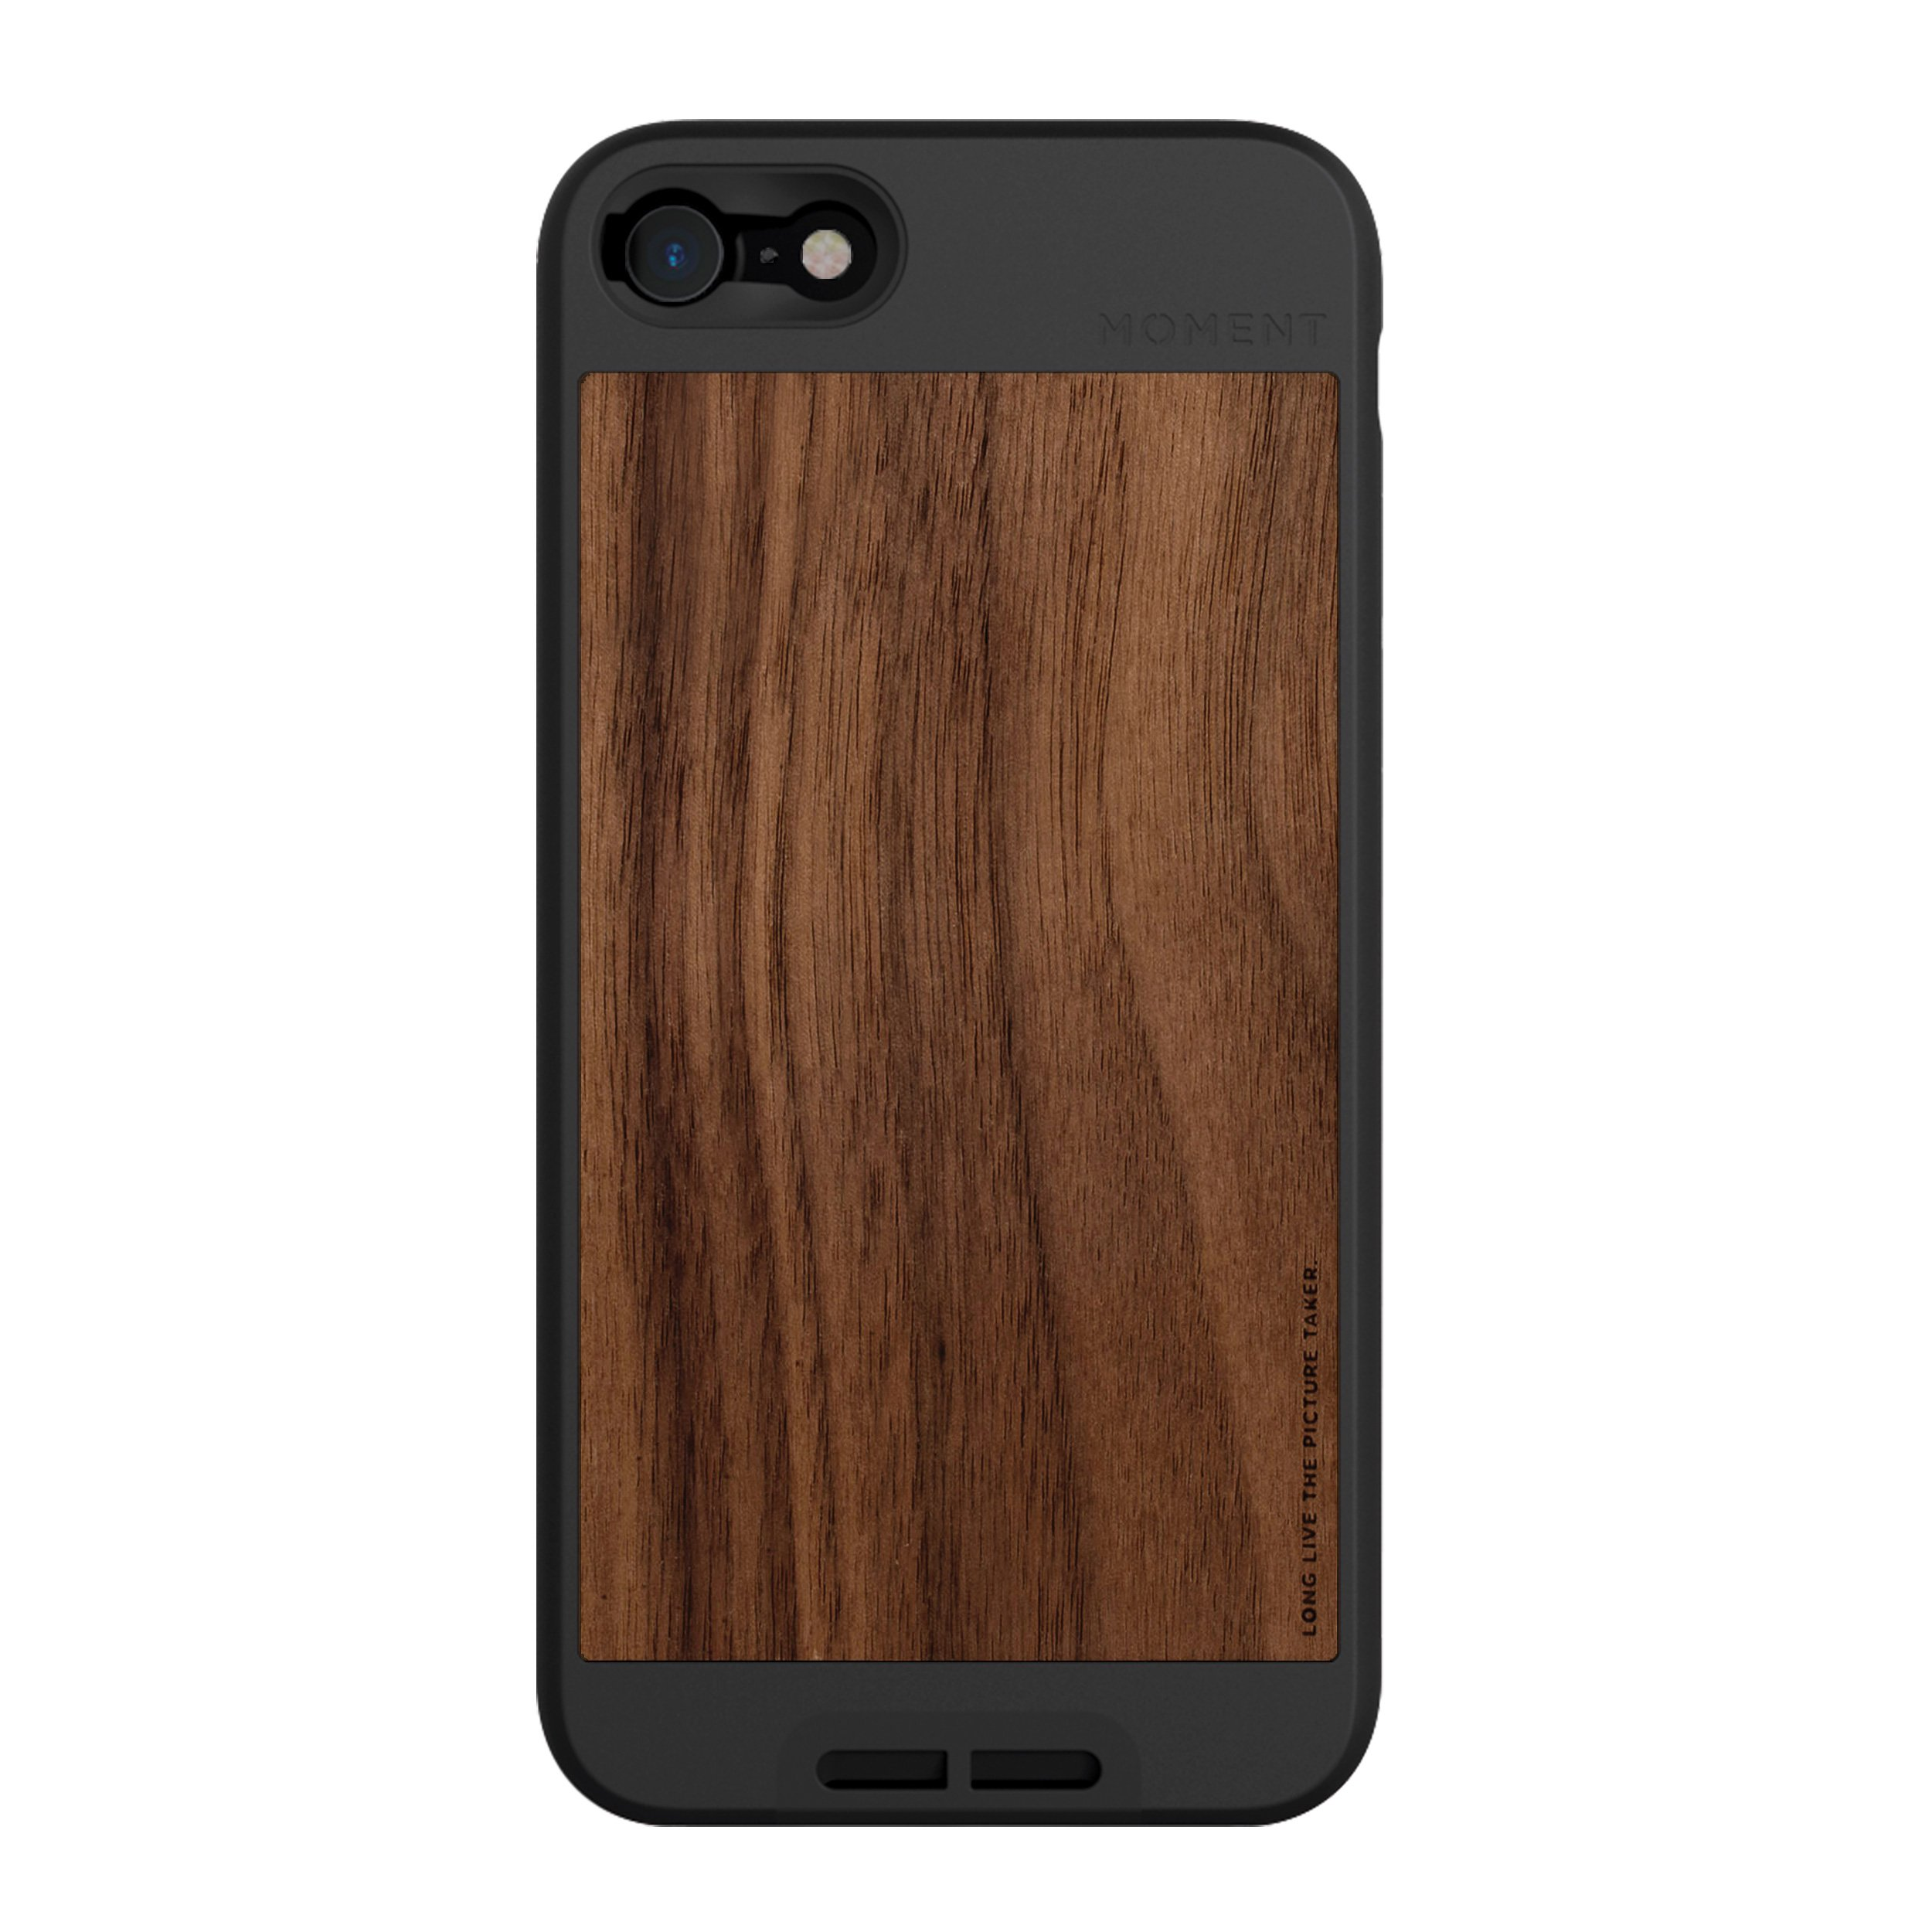 iPhone 7 / iPhone 8 Case || Moment Photo Case in Walnut Wood - Thin, Protective, Wrist Strap Friendly case for Camera Lovers.